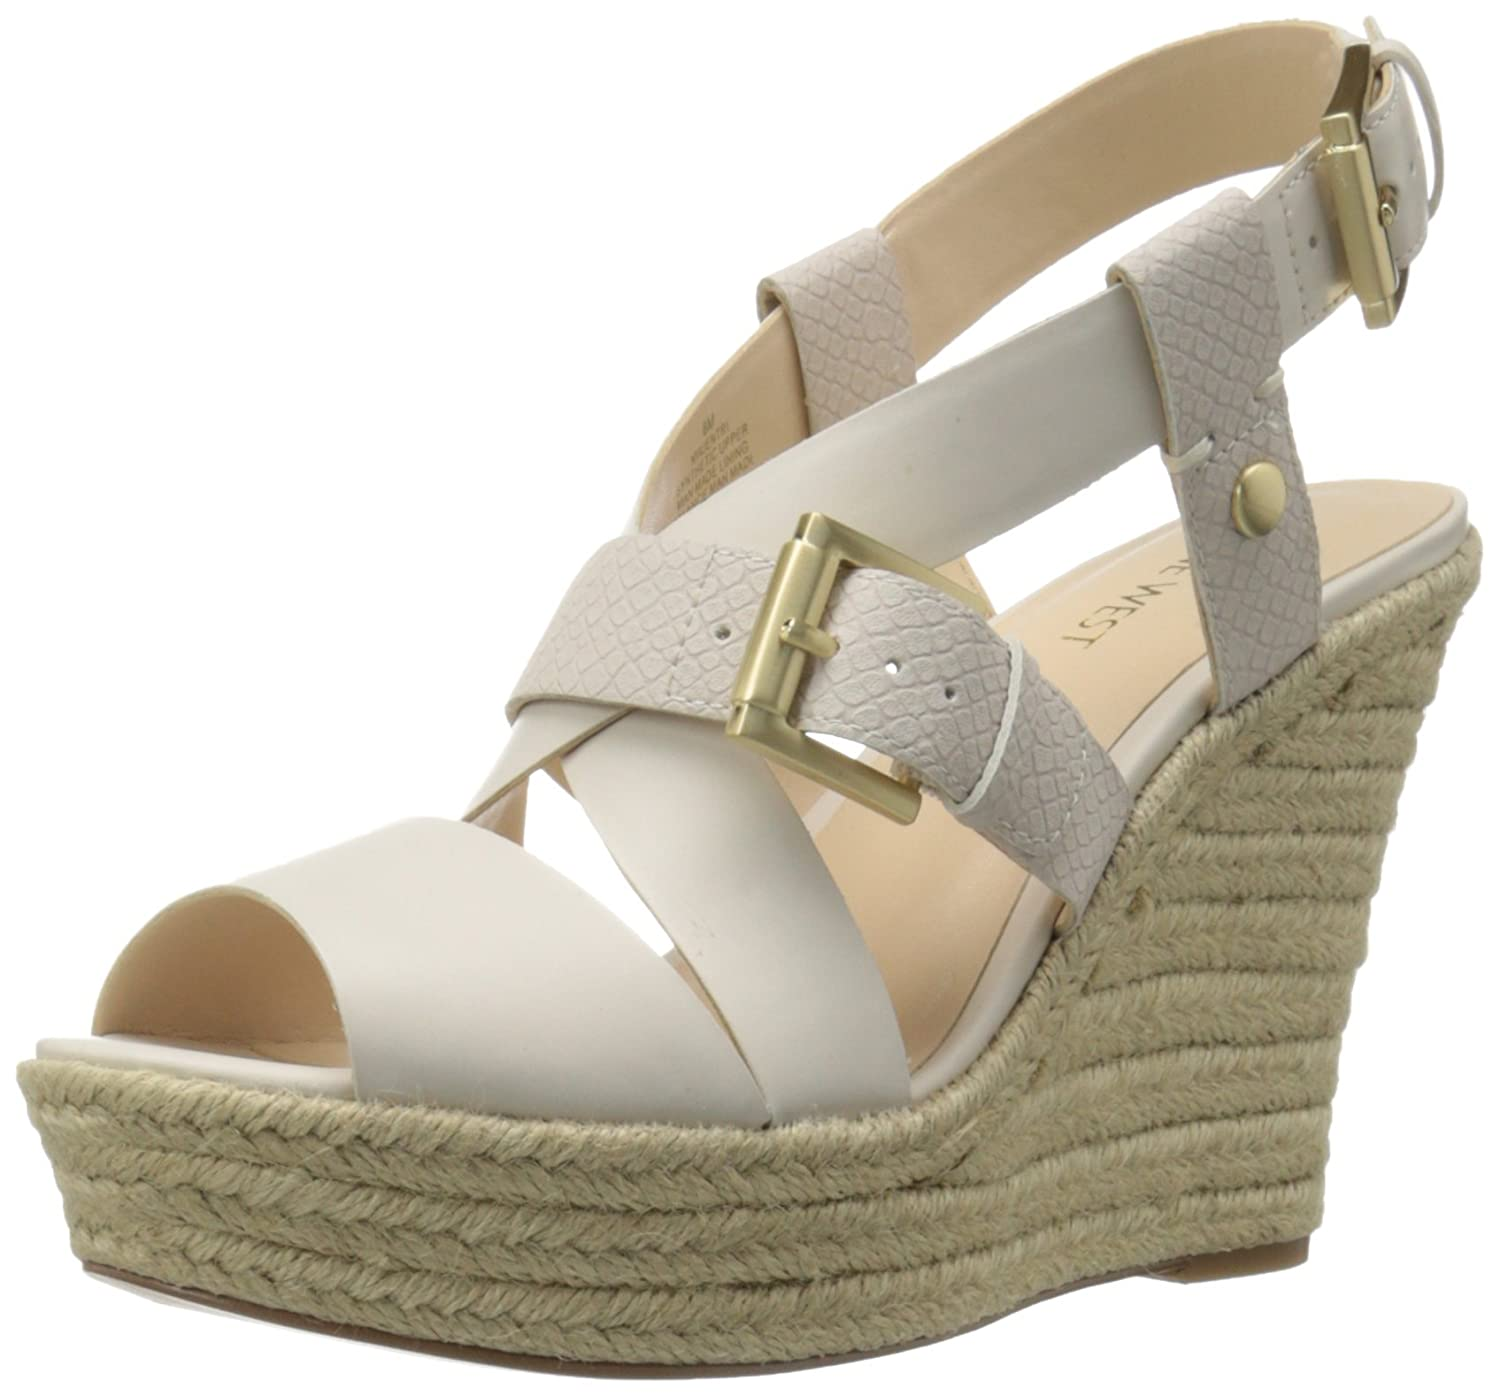 Nine West Women's Jentri Synthetic Wedge Sandal B017MJL29O 9.5 B(M) US|Off White/Off White